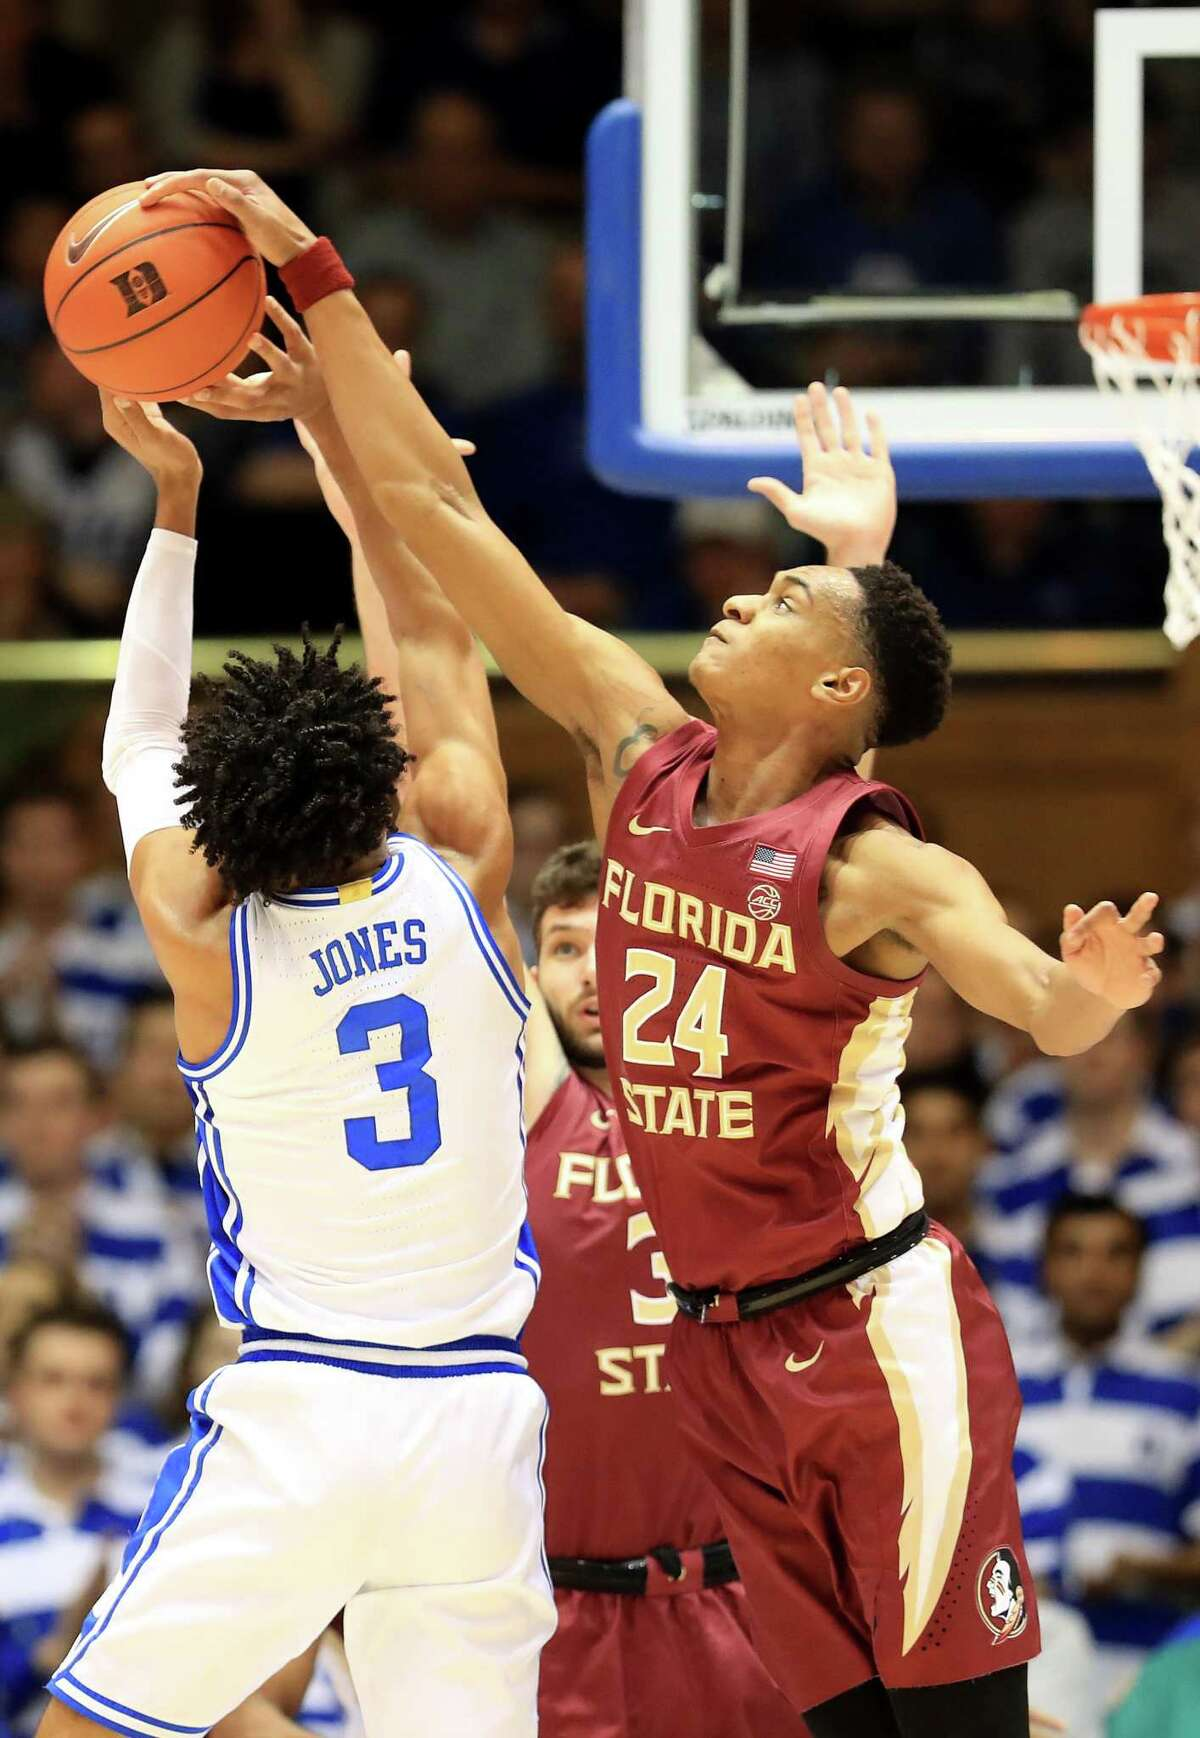 The Spurs drafted Florida State's Devin Vassell, right, with the 11th overall pick. Vassell, a 6-foot-7 guard, was regarded as one of the draft's top wing defenders.